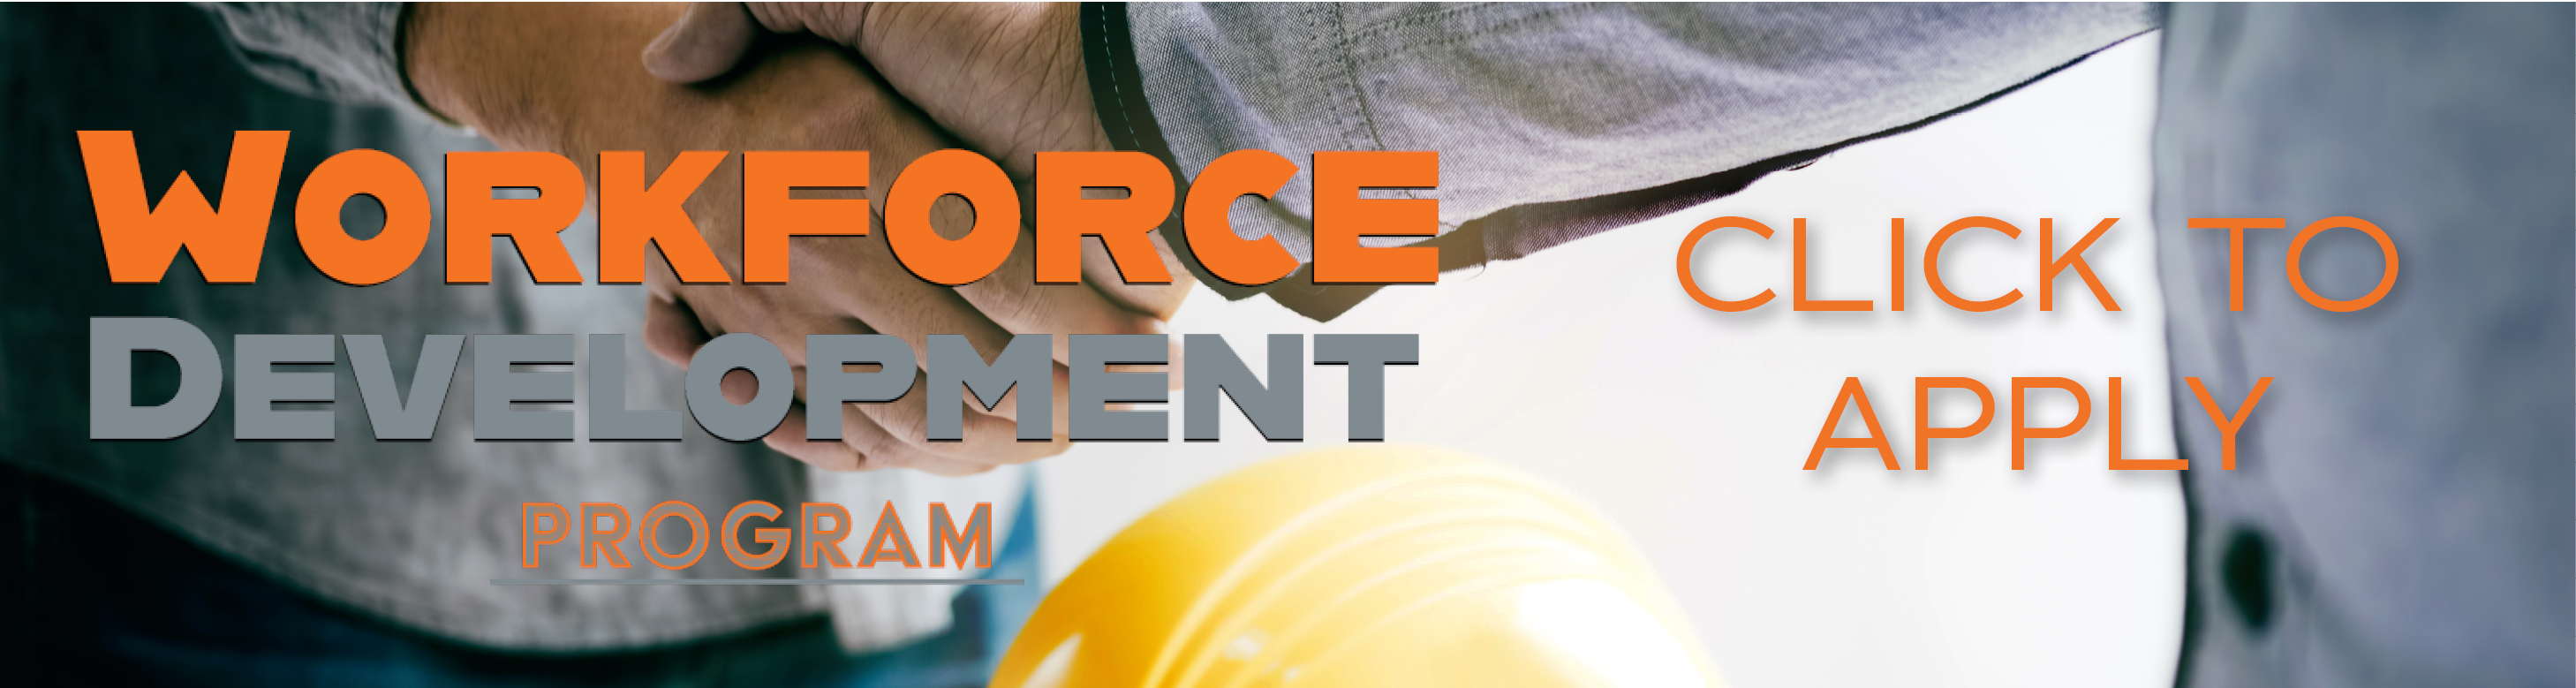 Workforce Development Banner